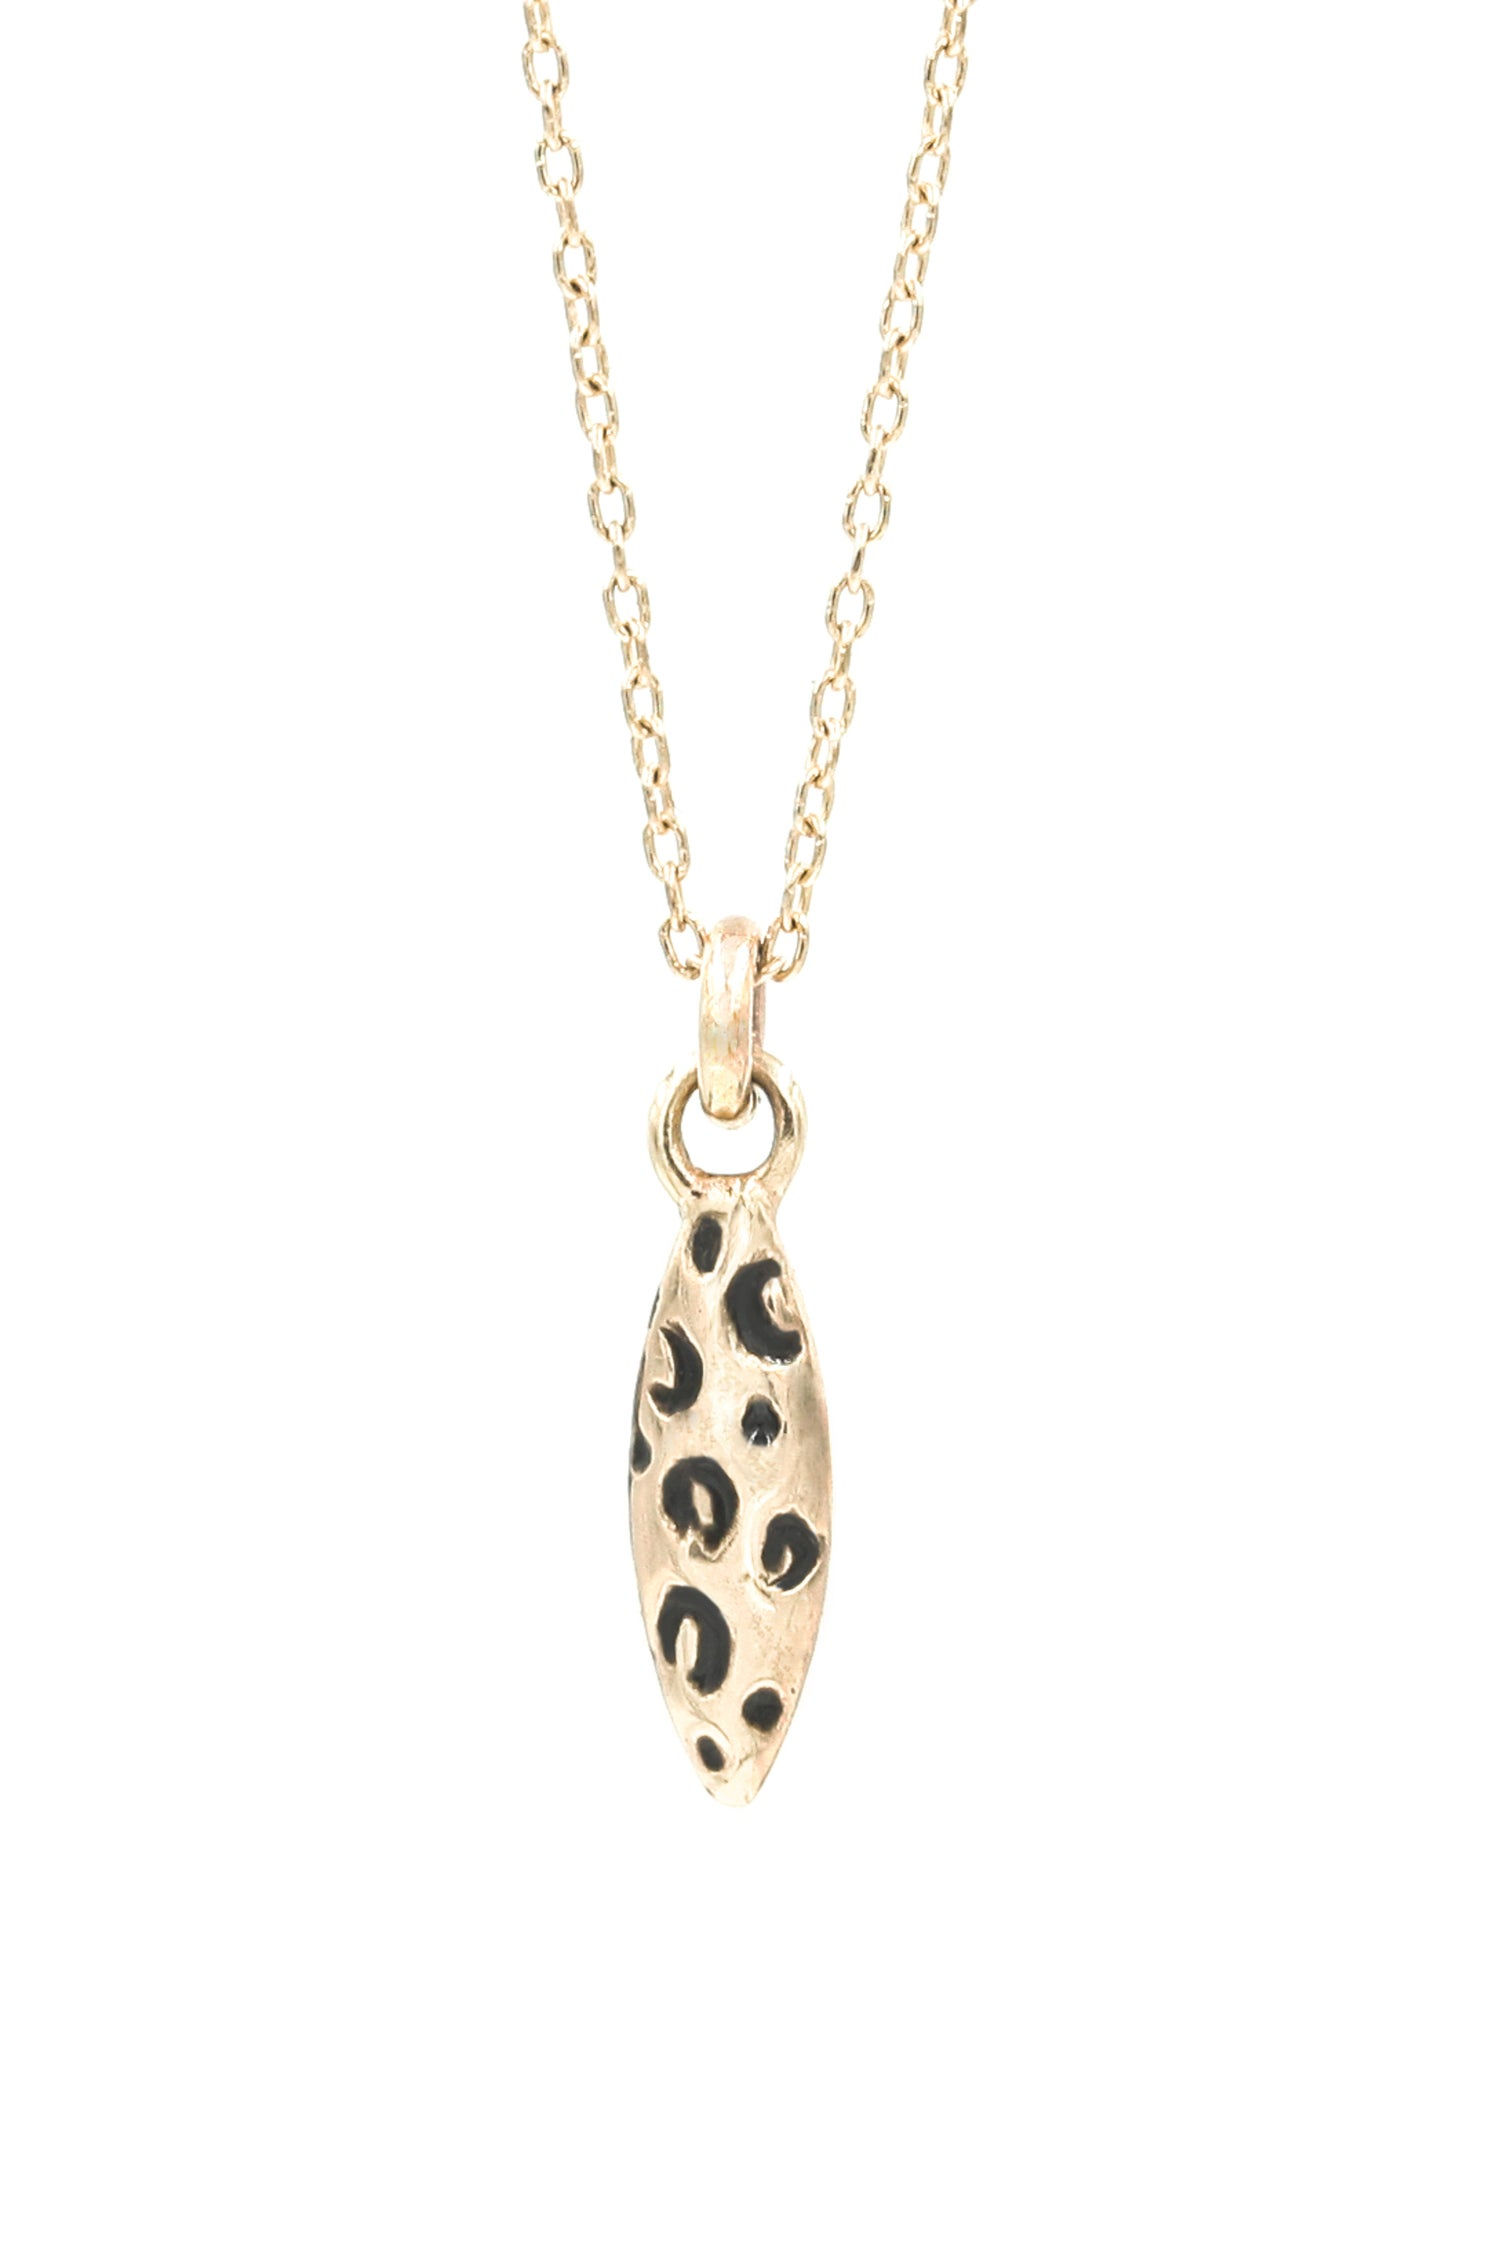 Image of LEOPARD NAVETTE NECKLACE